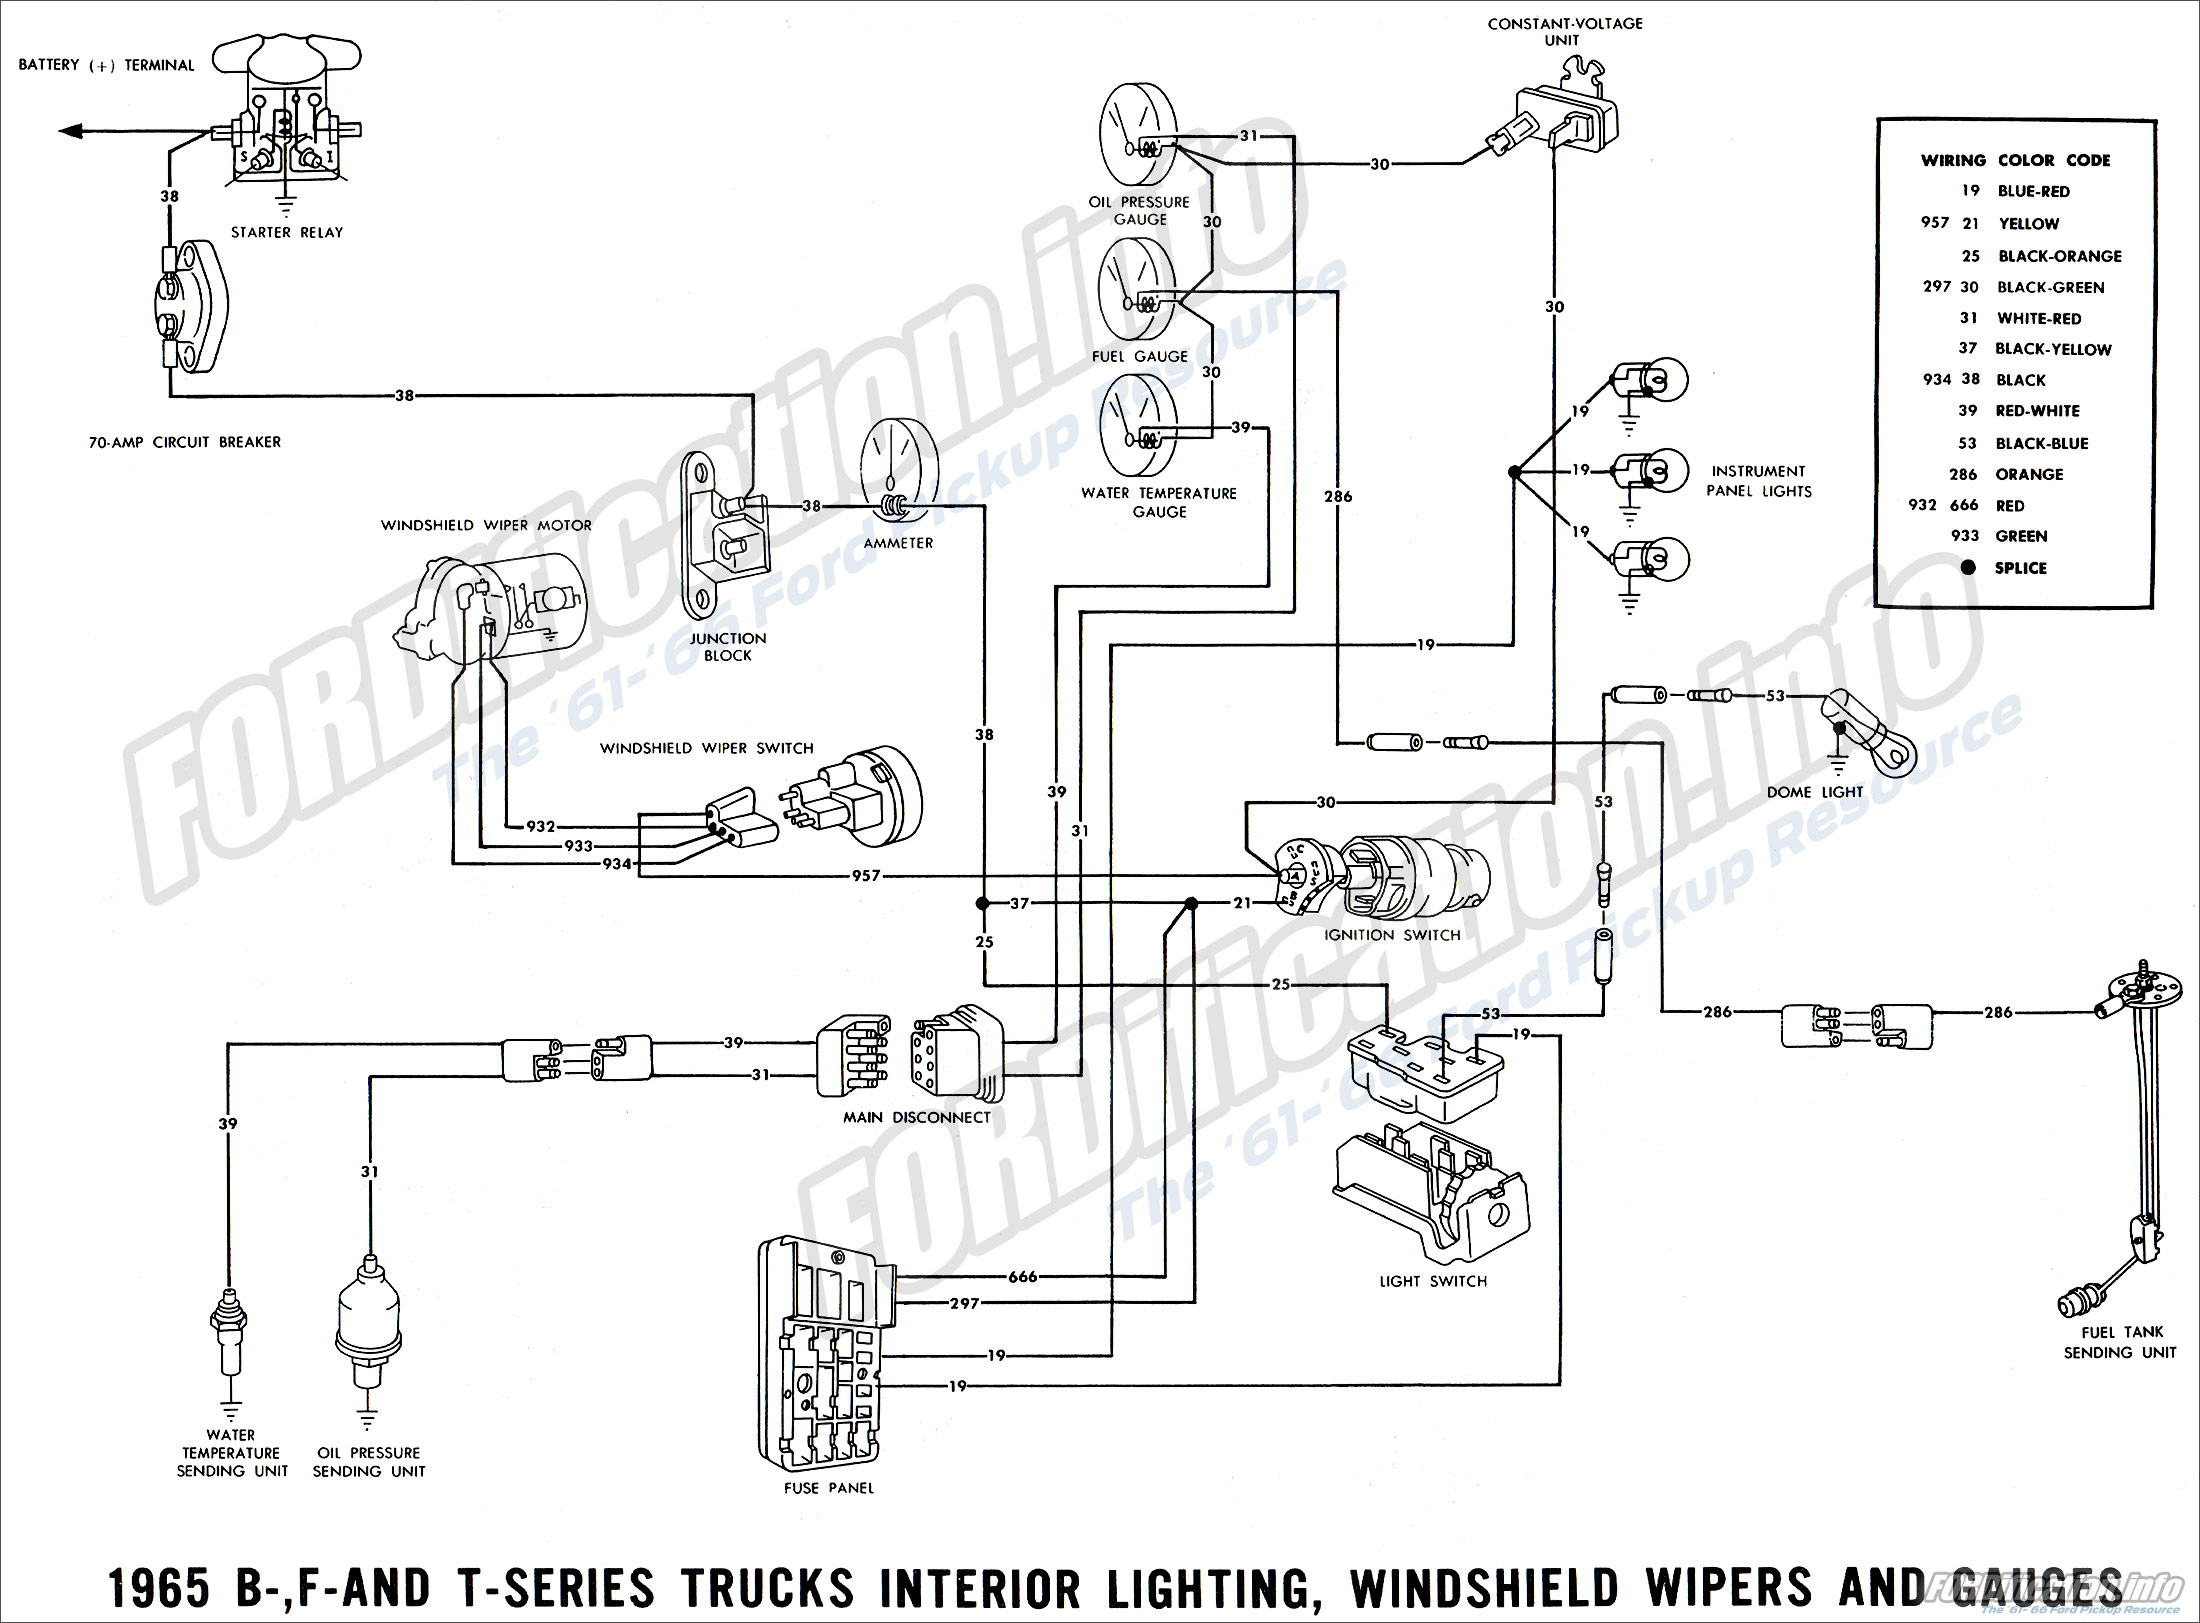 1958 ford f100 wiring diagram wiring diagram third level65 ford f100 wiring diagrams truck box wiring diagram 1974 ford f100 wiring diagram 1958 ford f100 wiring diagram